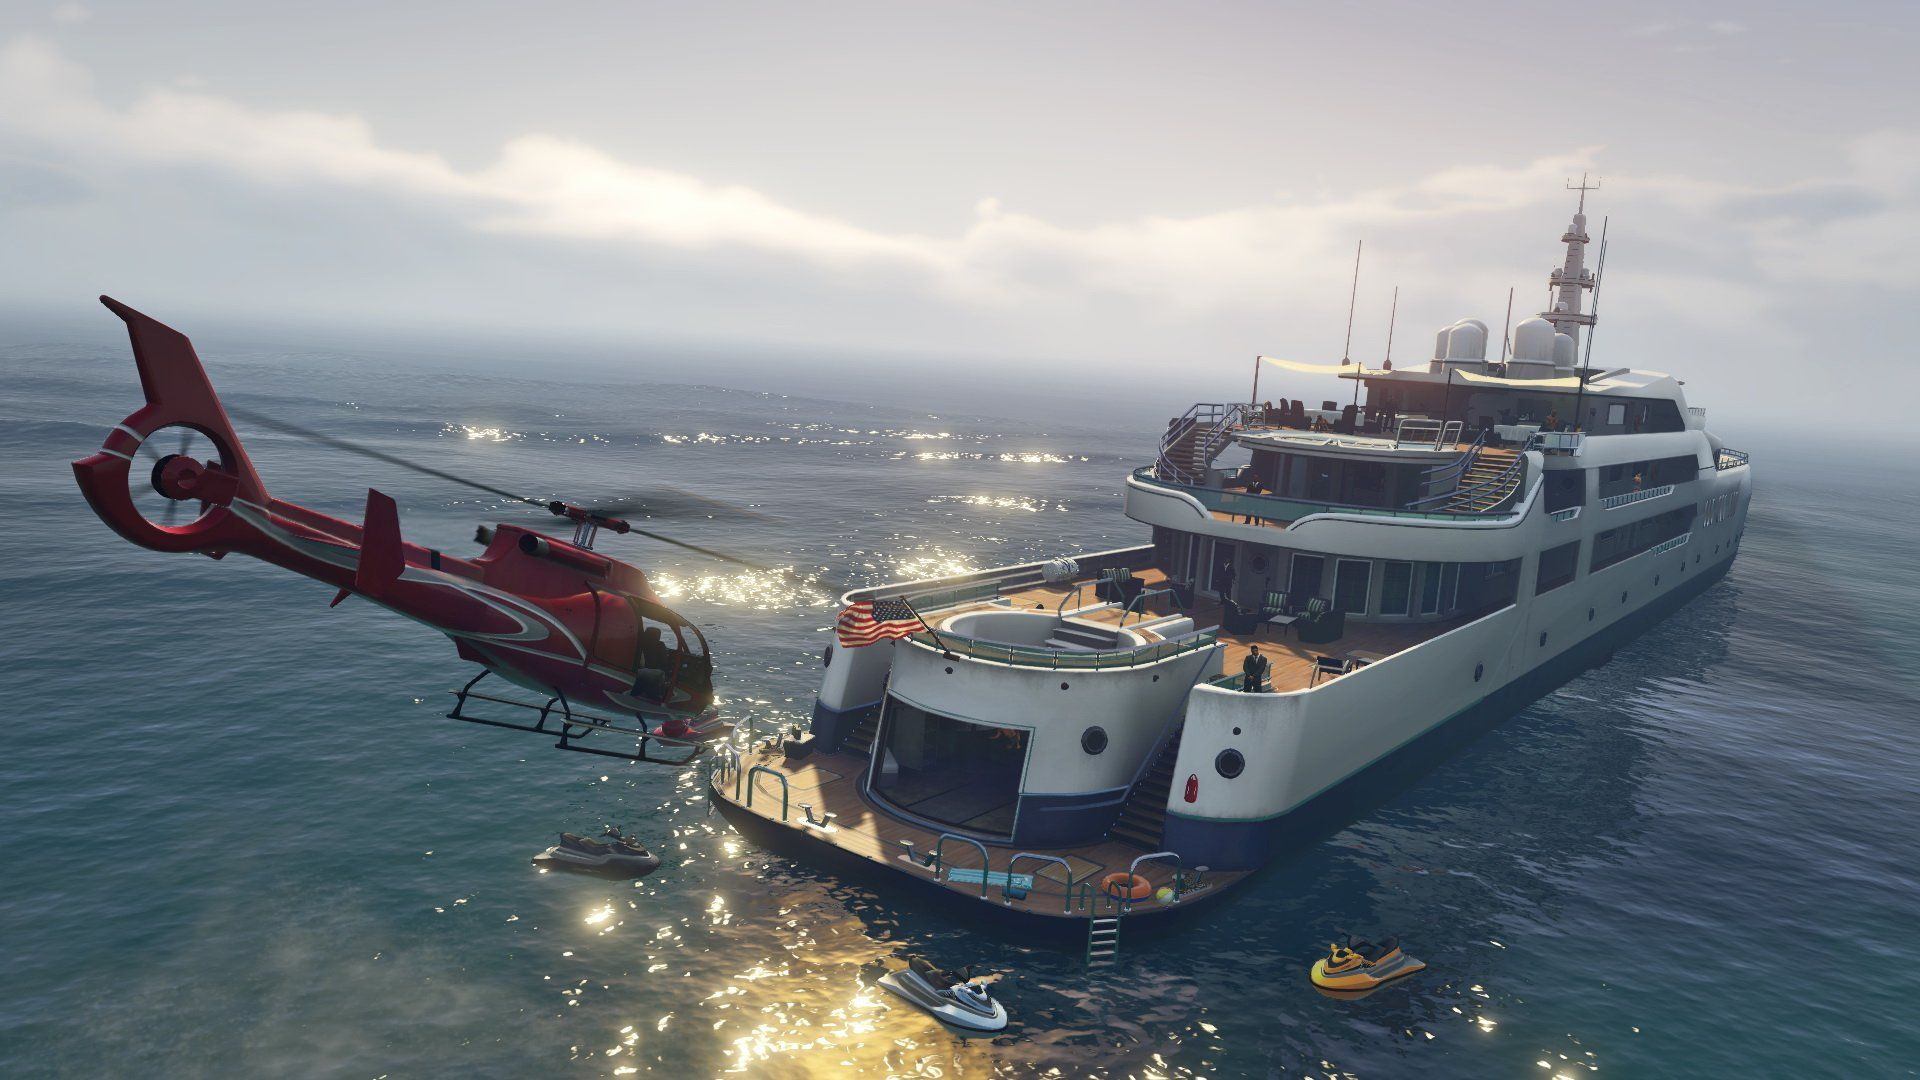 Image Gta V Hd Wallpaper Crying Sad Pictures Zoom 1920x1080 5 Wallpapers 42